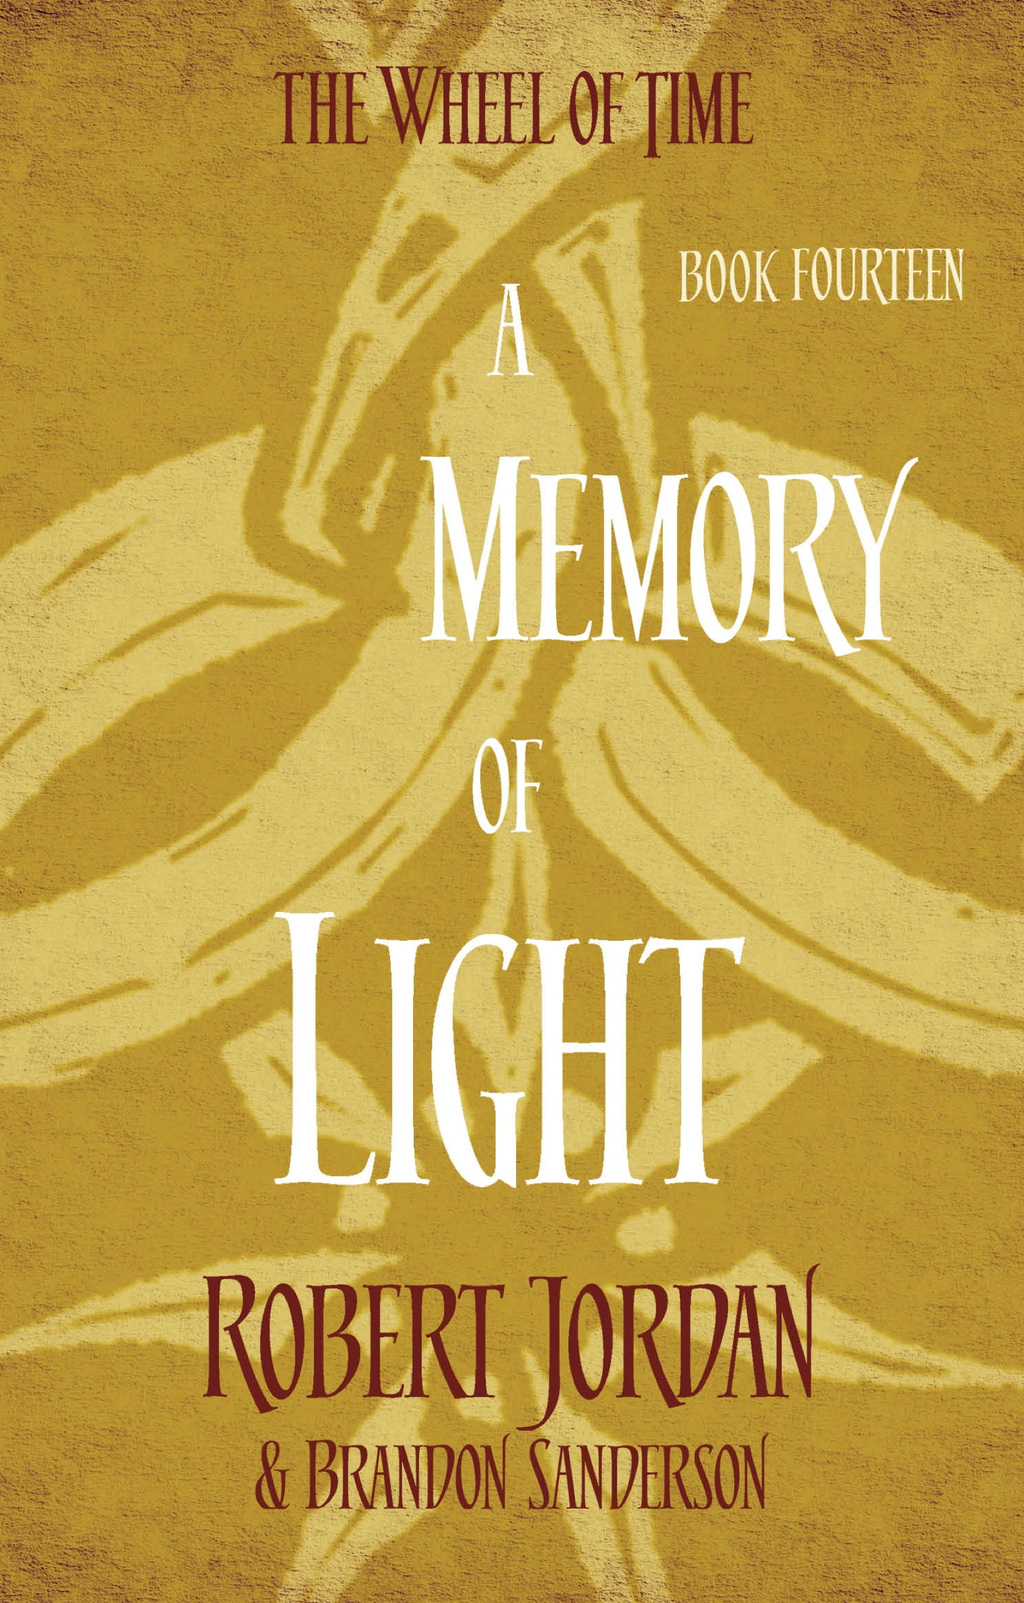 A Memory Of Light Book 14 of the Wheel of Time